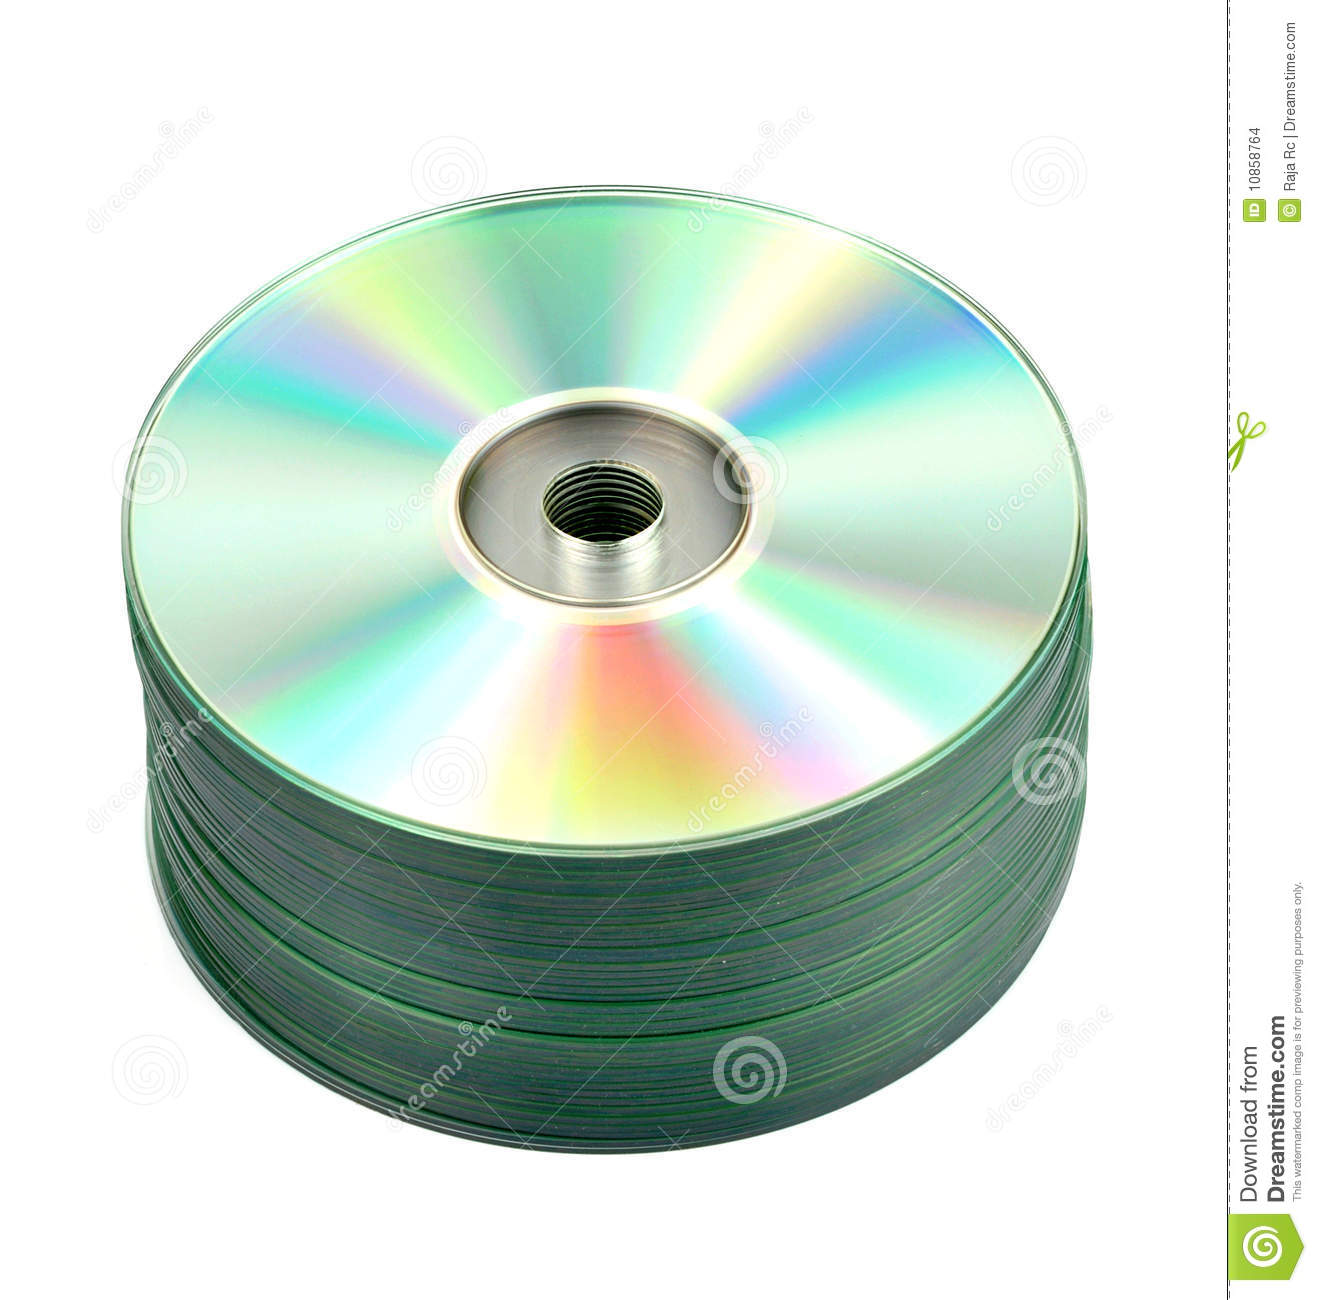 Cd Rom Stock Photo Image Of Computer Record Disk Media